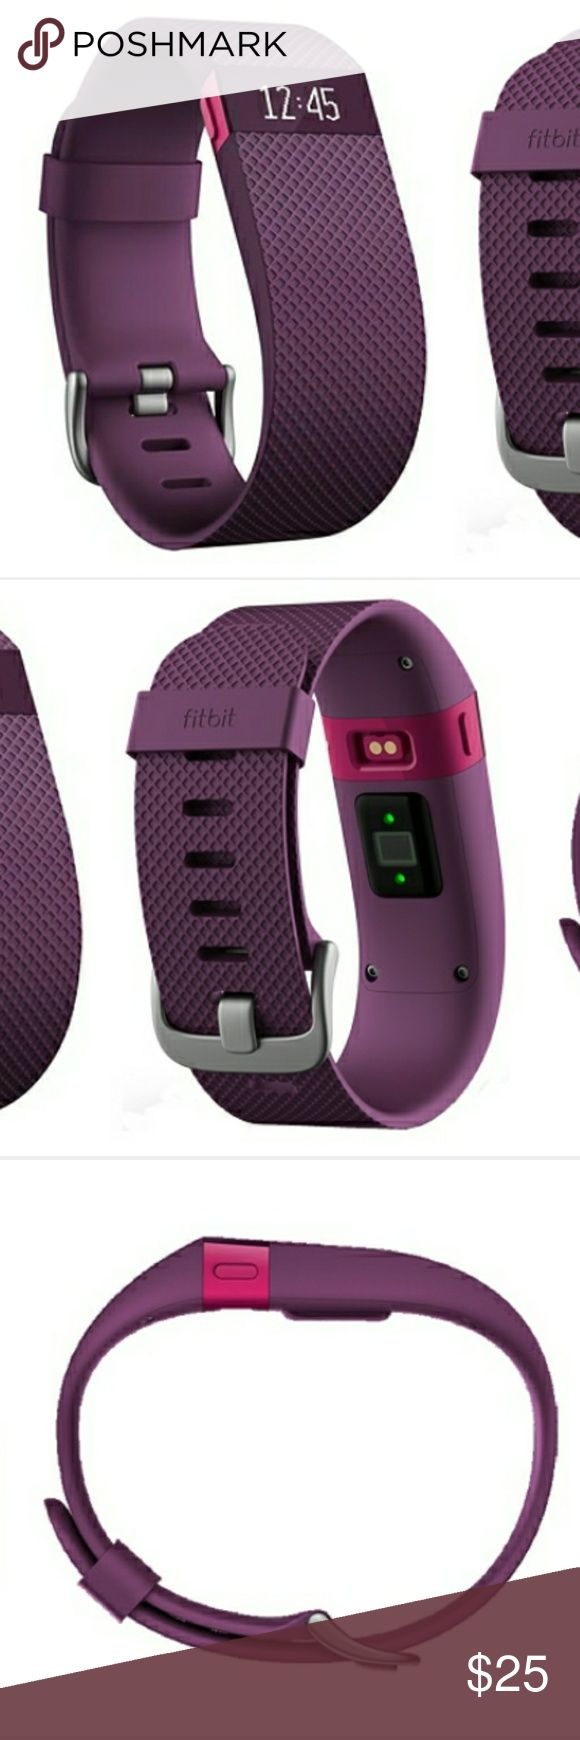 Fitbit Charge HR Fitbit Charge HR Wireless Heart Rate + Activity Wristband:?This heart rate and activity tracking wristband is built to capture your movements and health patterns all day long. Easily monitor your heart rate so you can maximize your workouts, learn about your sleep quality and monitor progress on your goals. FITBIT LOGO BAND IN PIC 2 IS MISSING! Make an offer Fitbit  Other